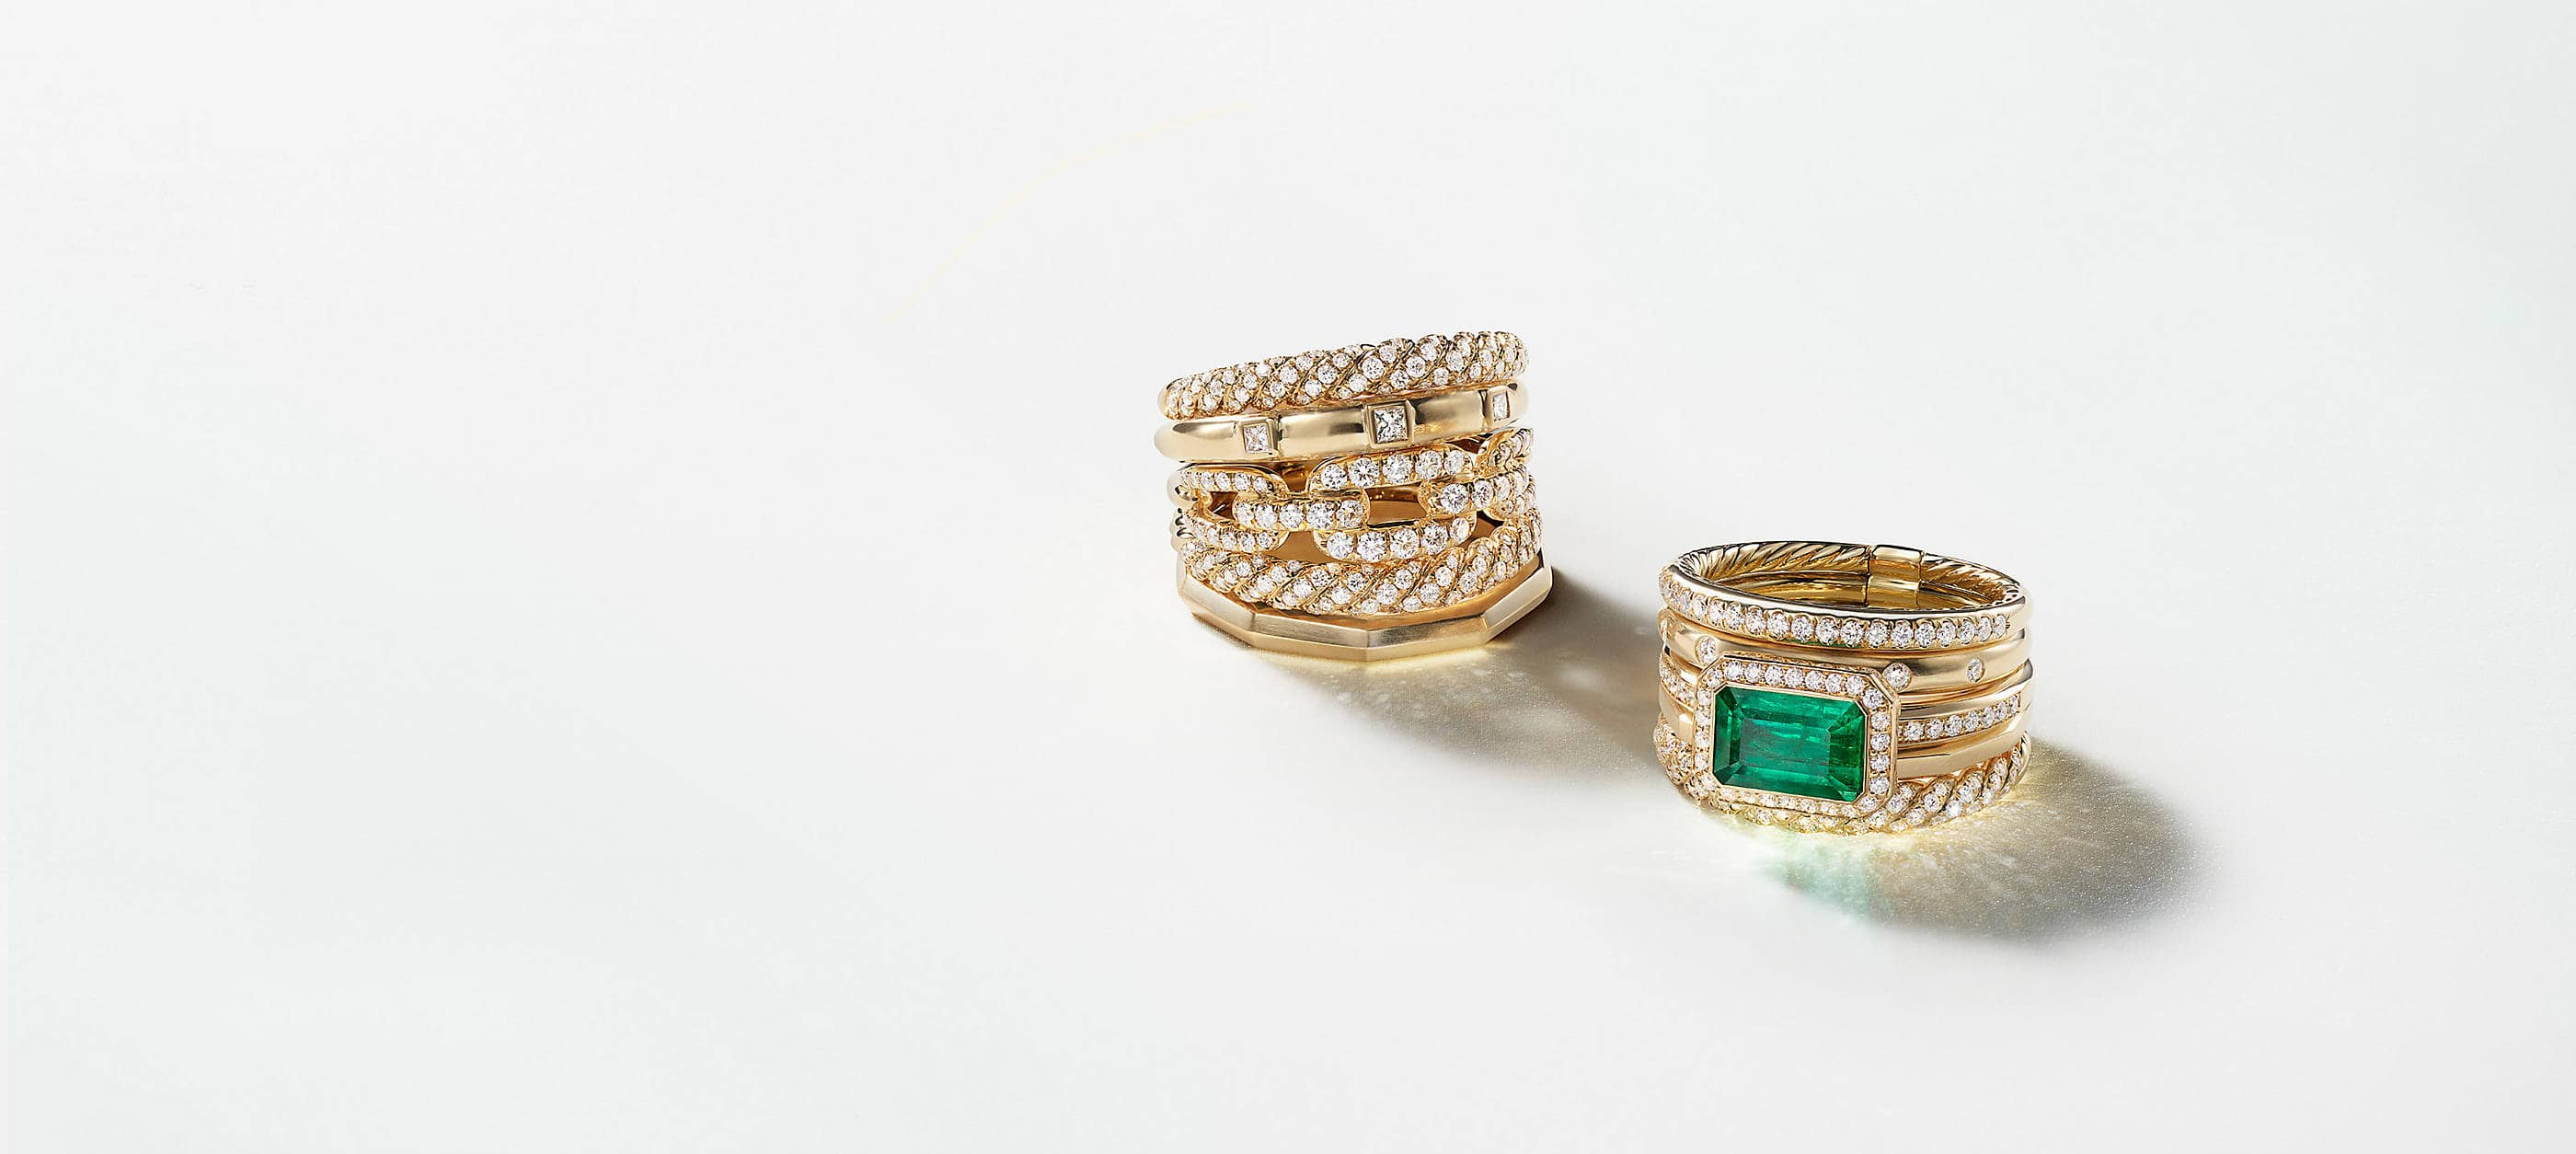 A color photograph shows two David Yurman Stax multi-row rings placed on a white background with soft shadows and reflections of light from the jewelry. The women's jewelry is crafted from 18K yellow gold with pavé diamonds. The ring on the right features an emerald center stone.